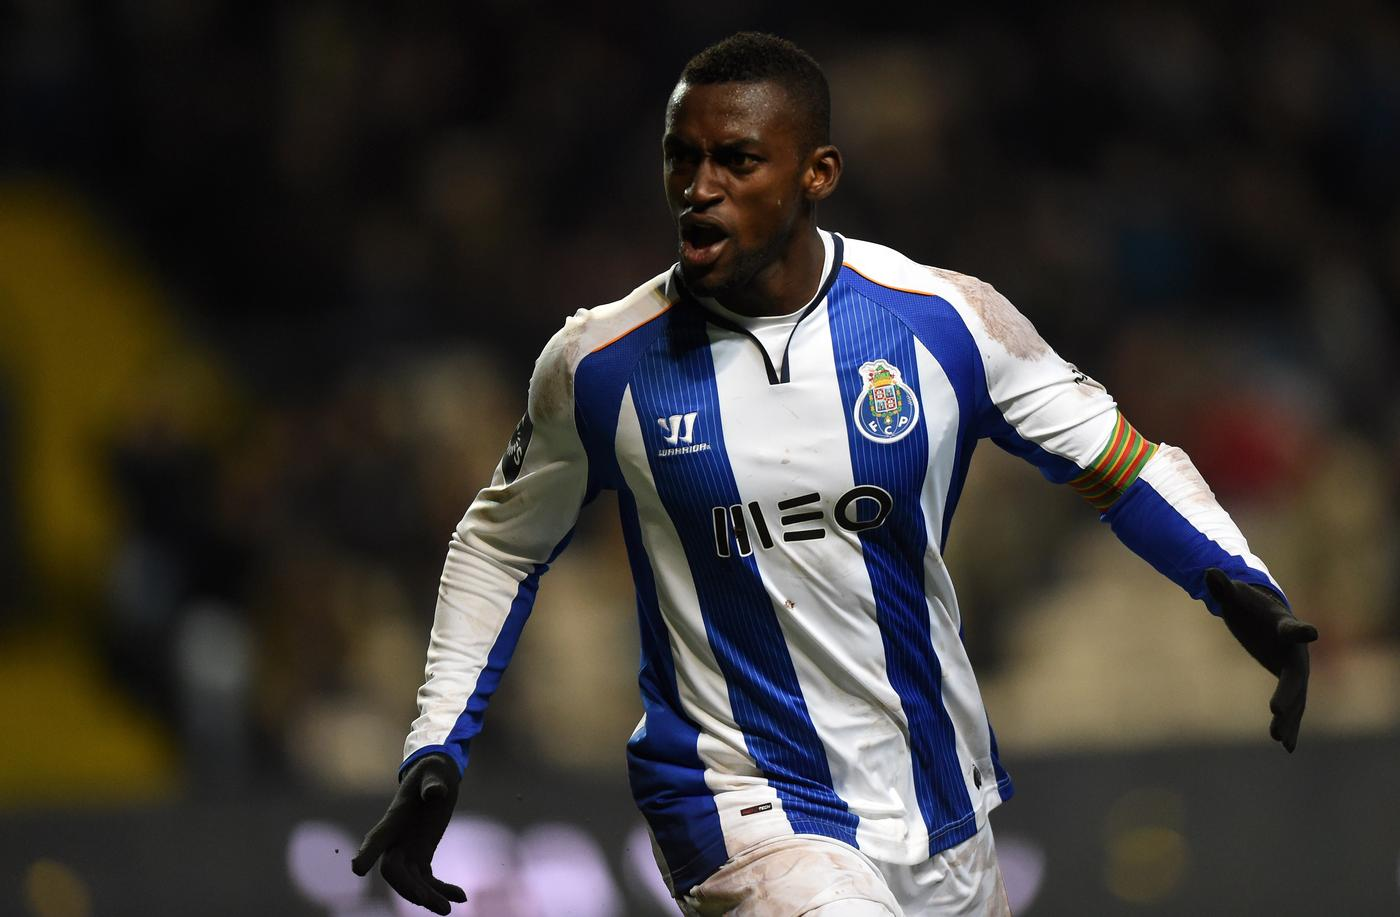 Jackson Martinez will decide whether he will transfer to Arsenal in the coming days